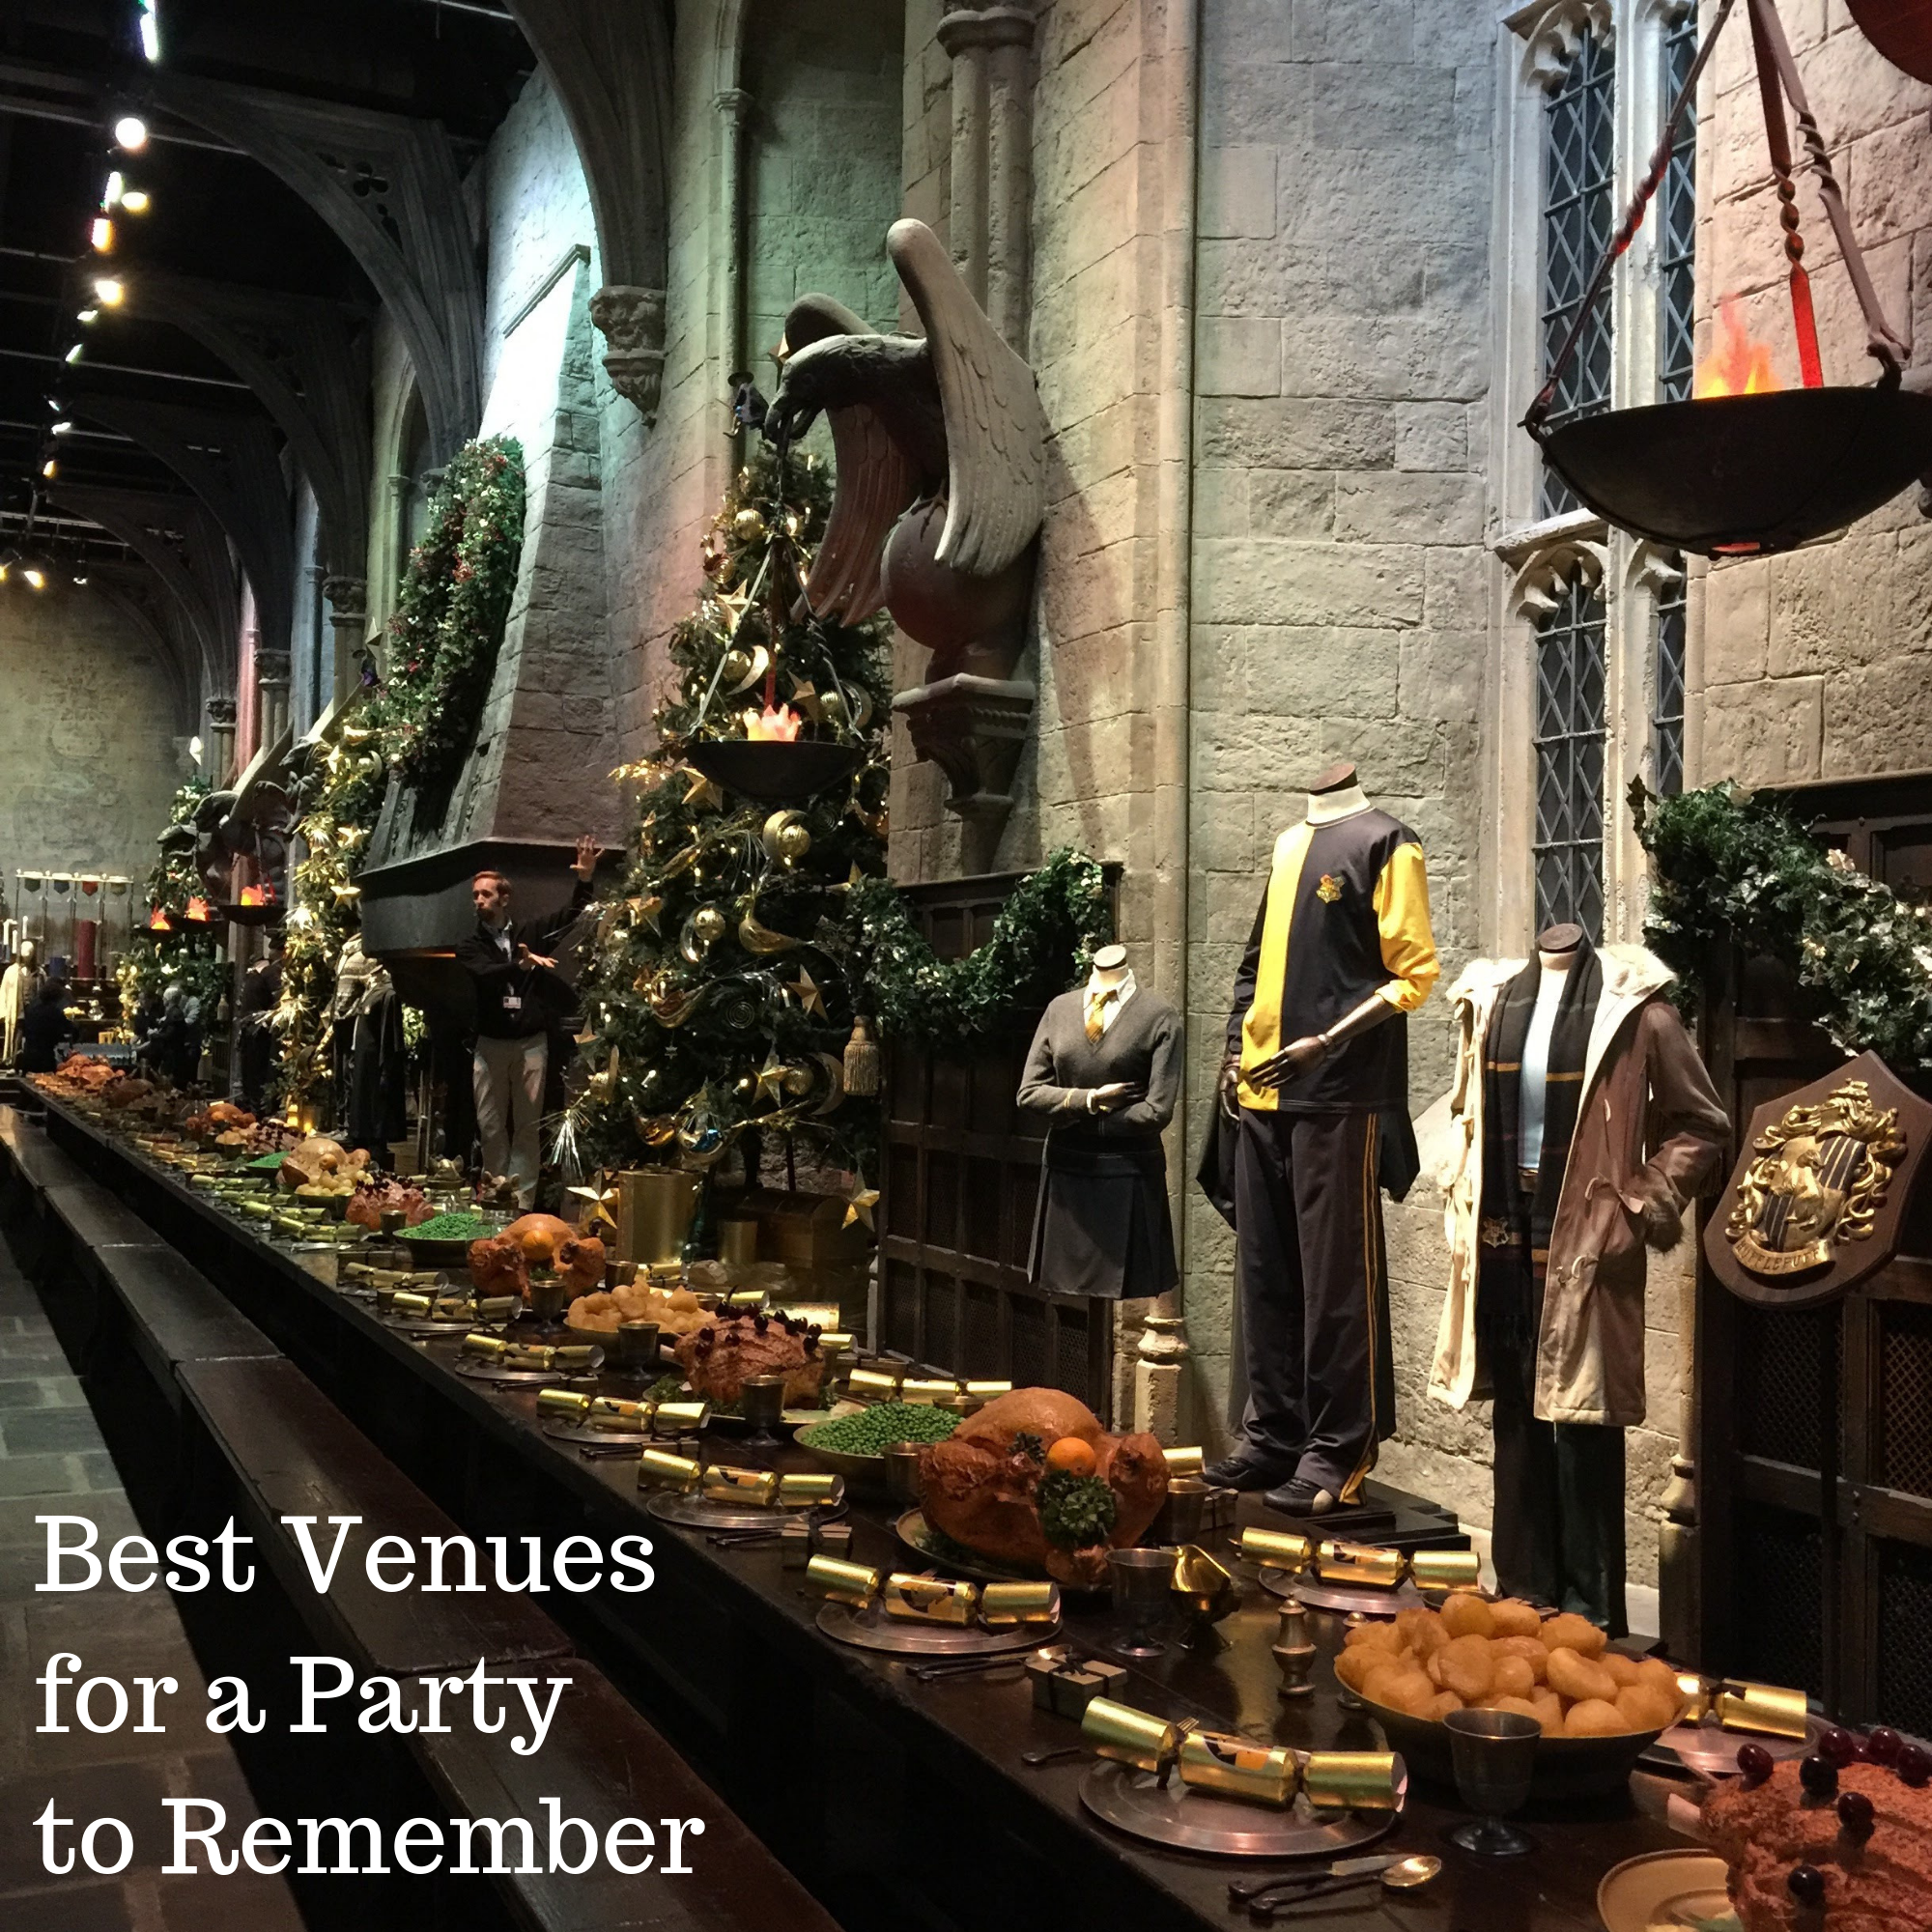 Best Venues for a Party to Remember